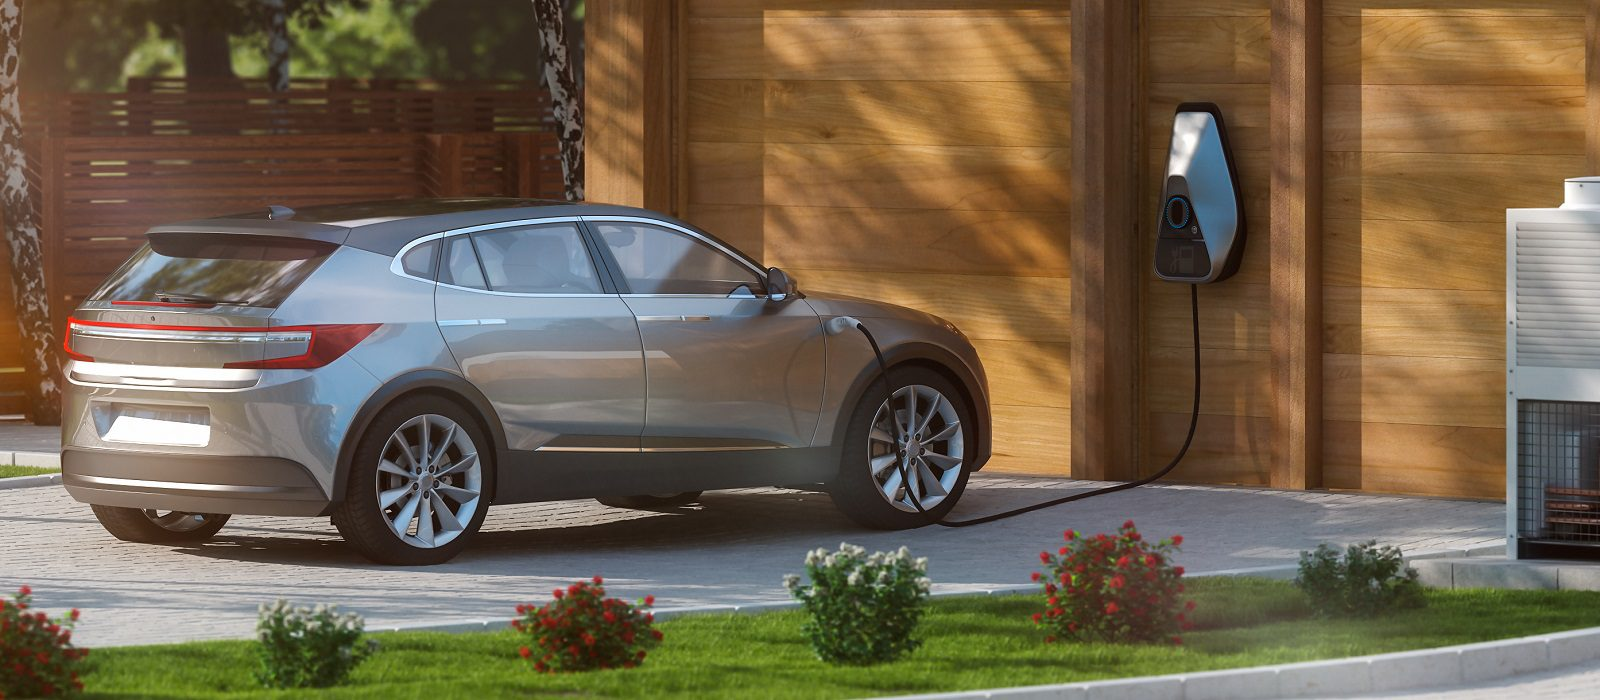 electric car suv parked in front of home modern low energy suburban house